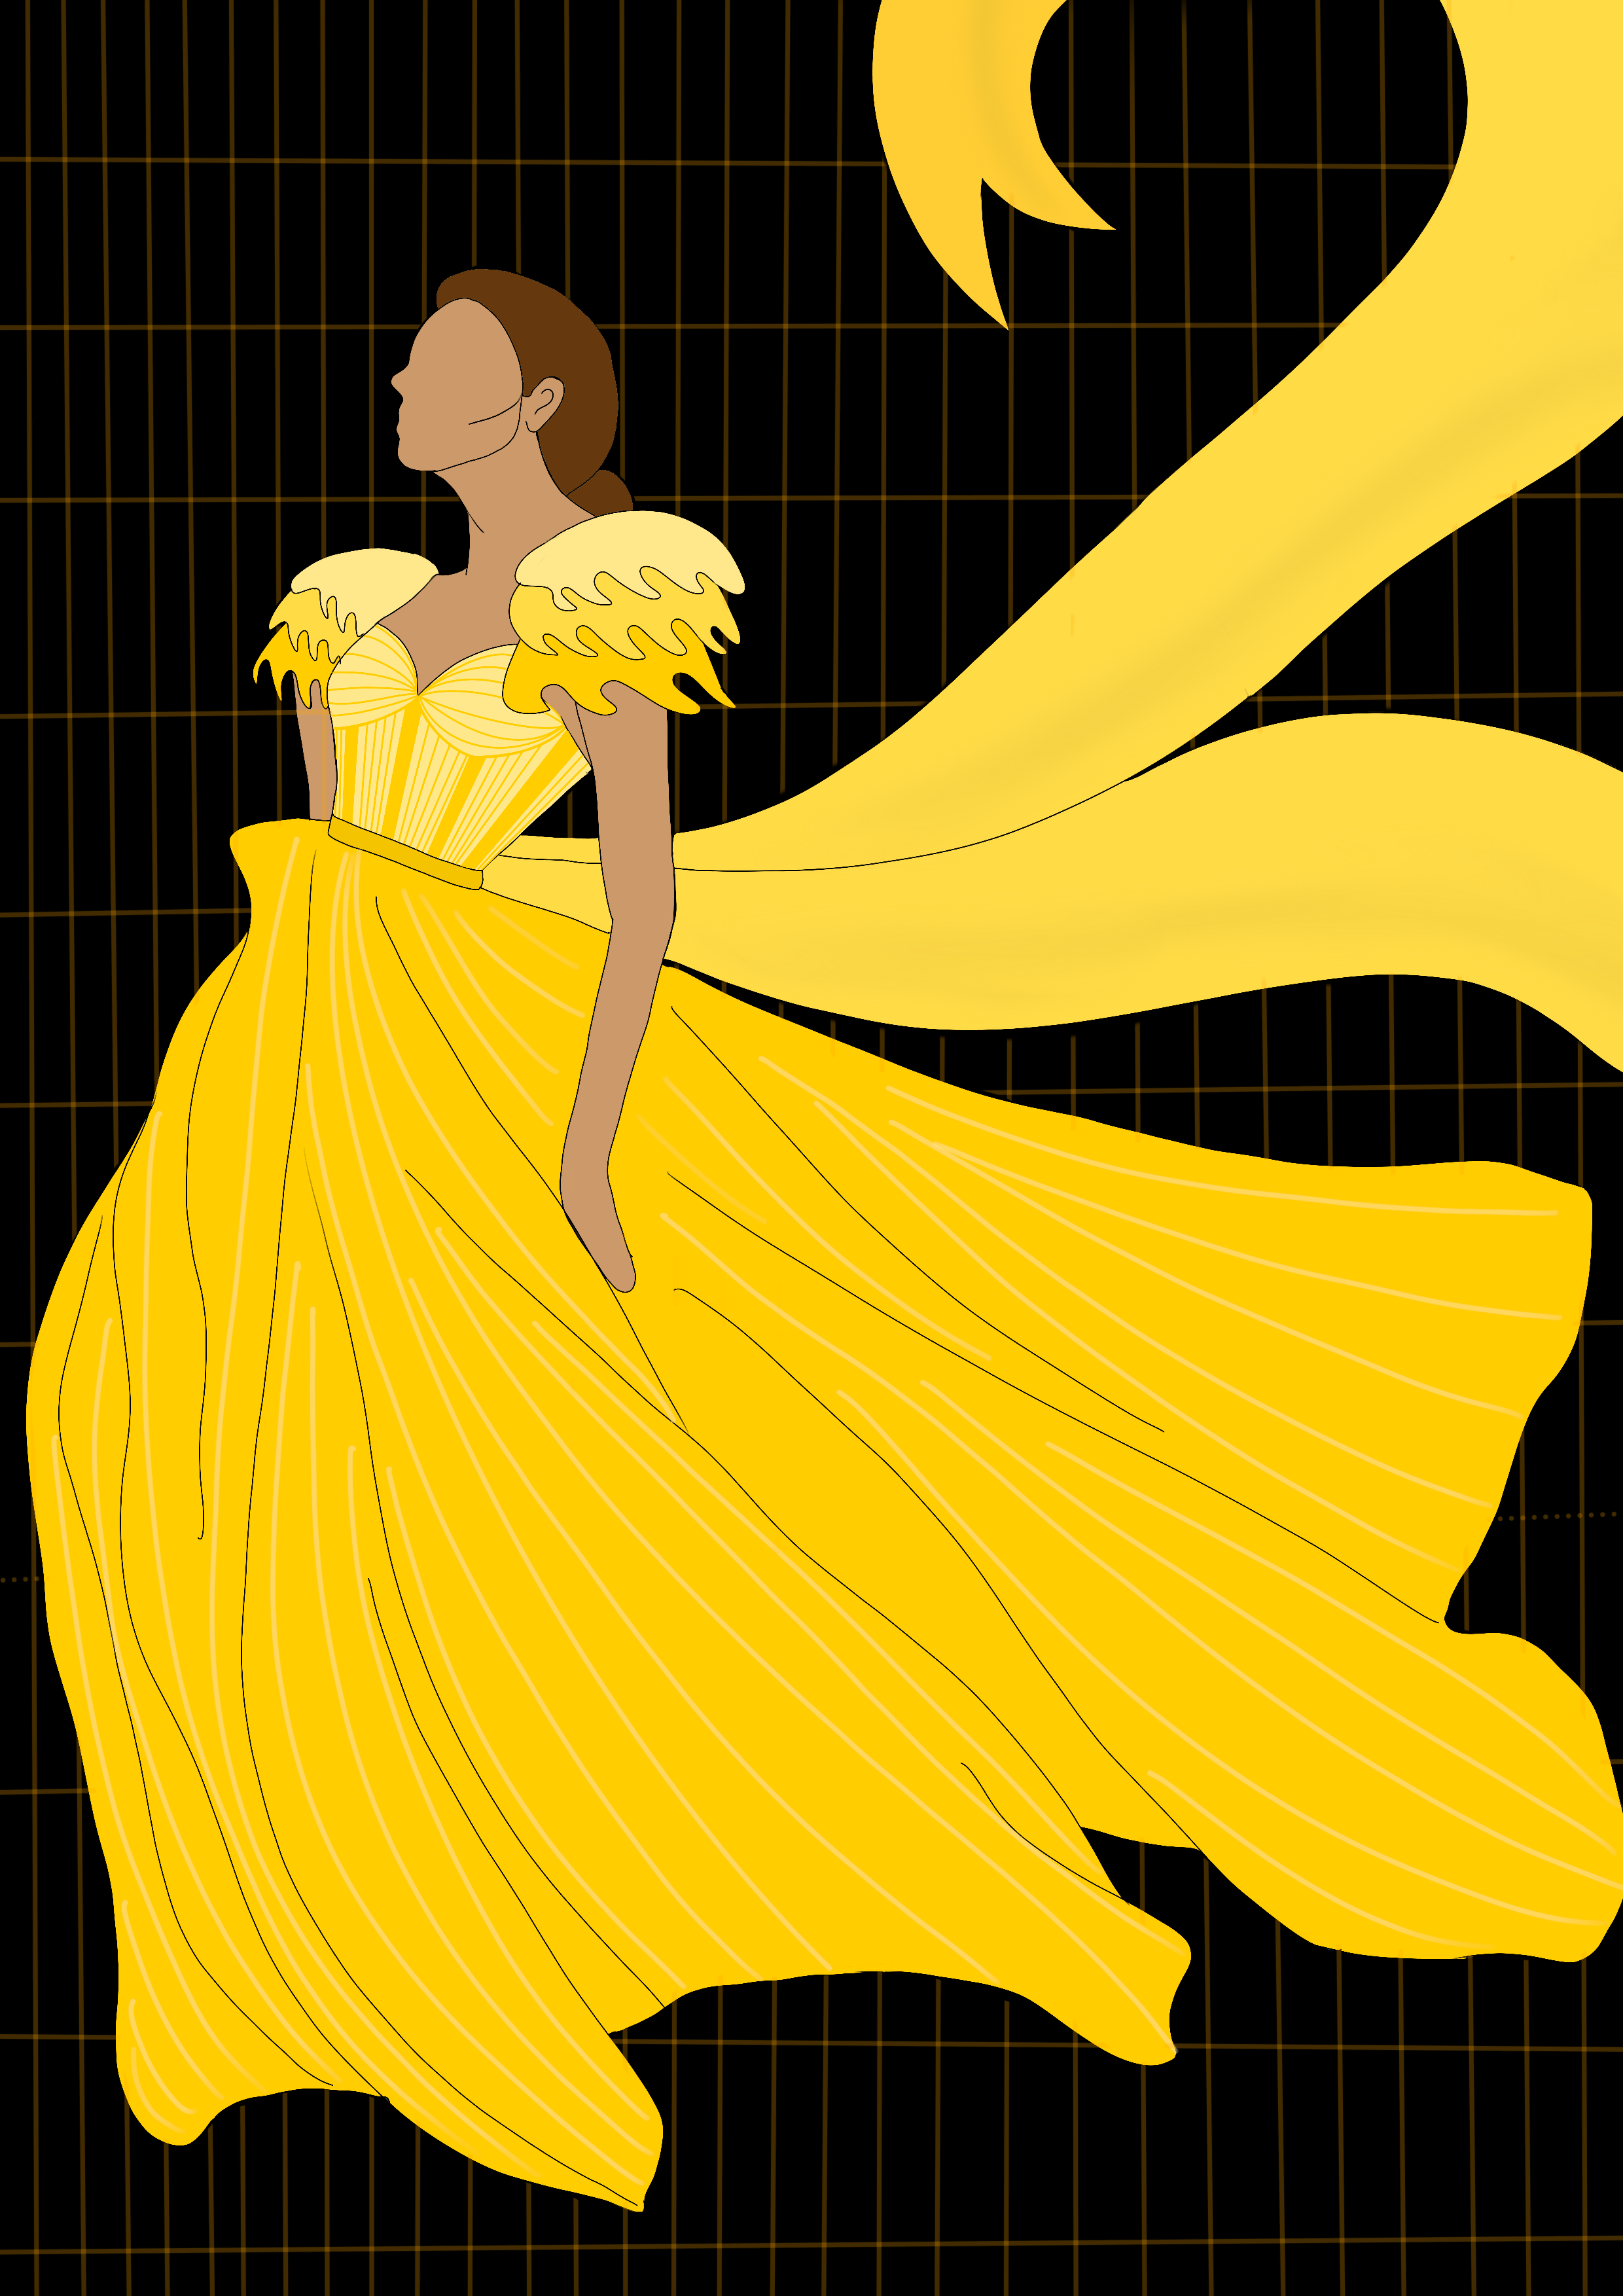 N10490876_DFB207_Illustration4 - yellow nightingale